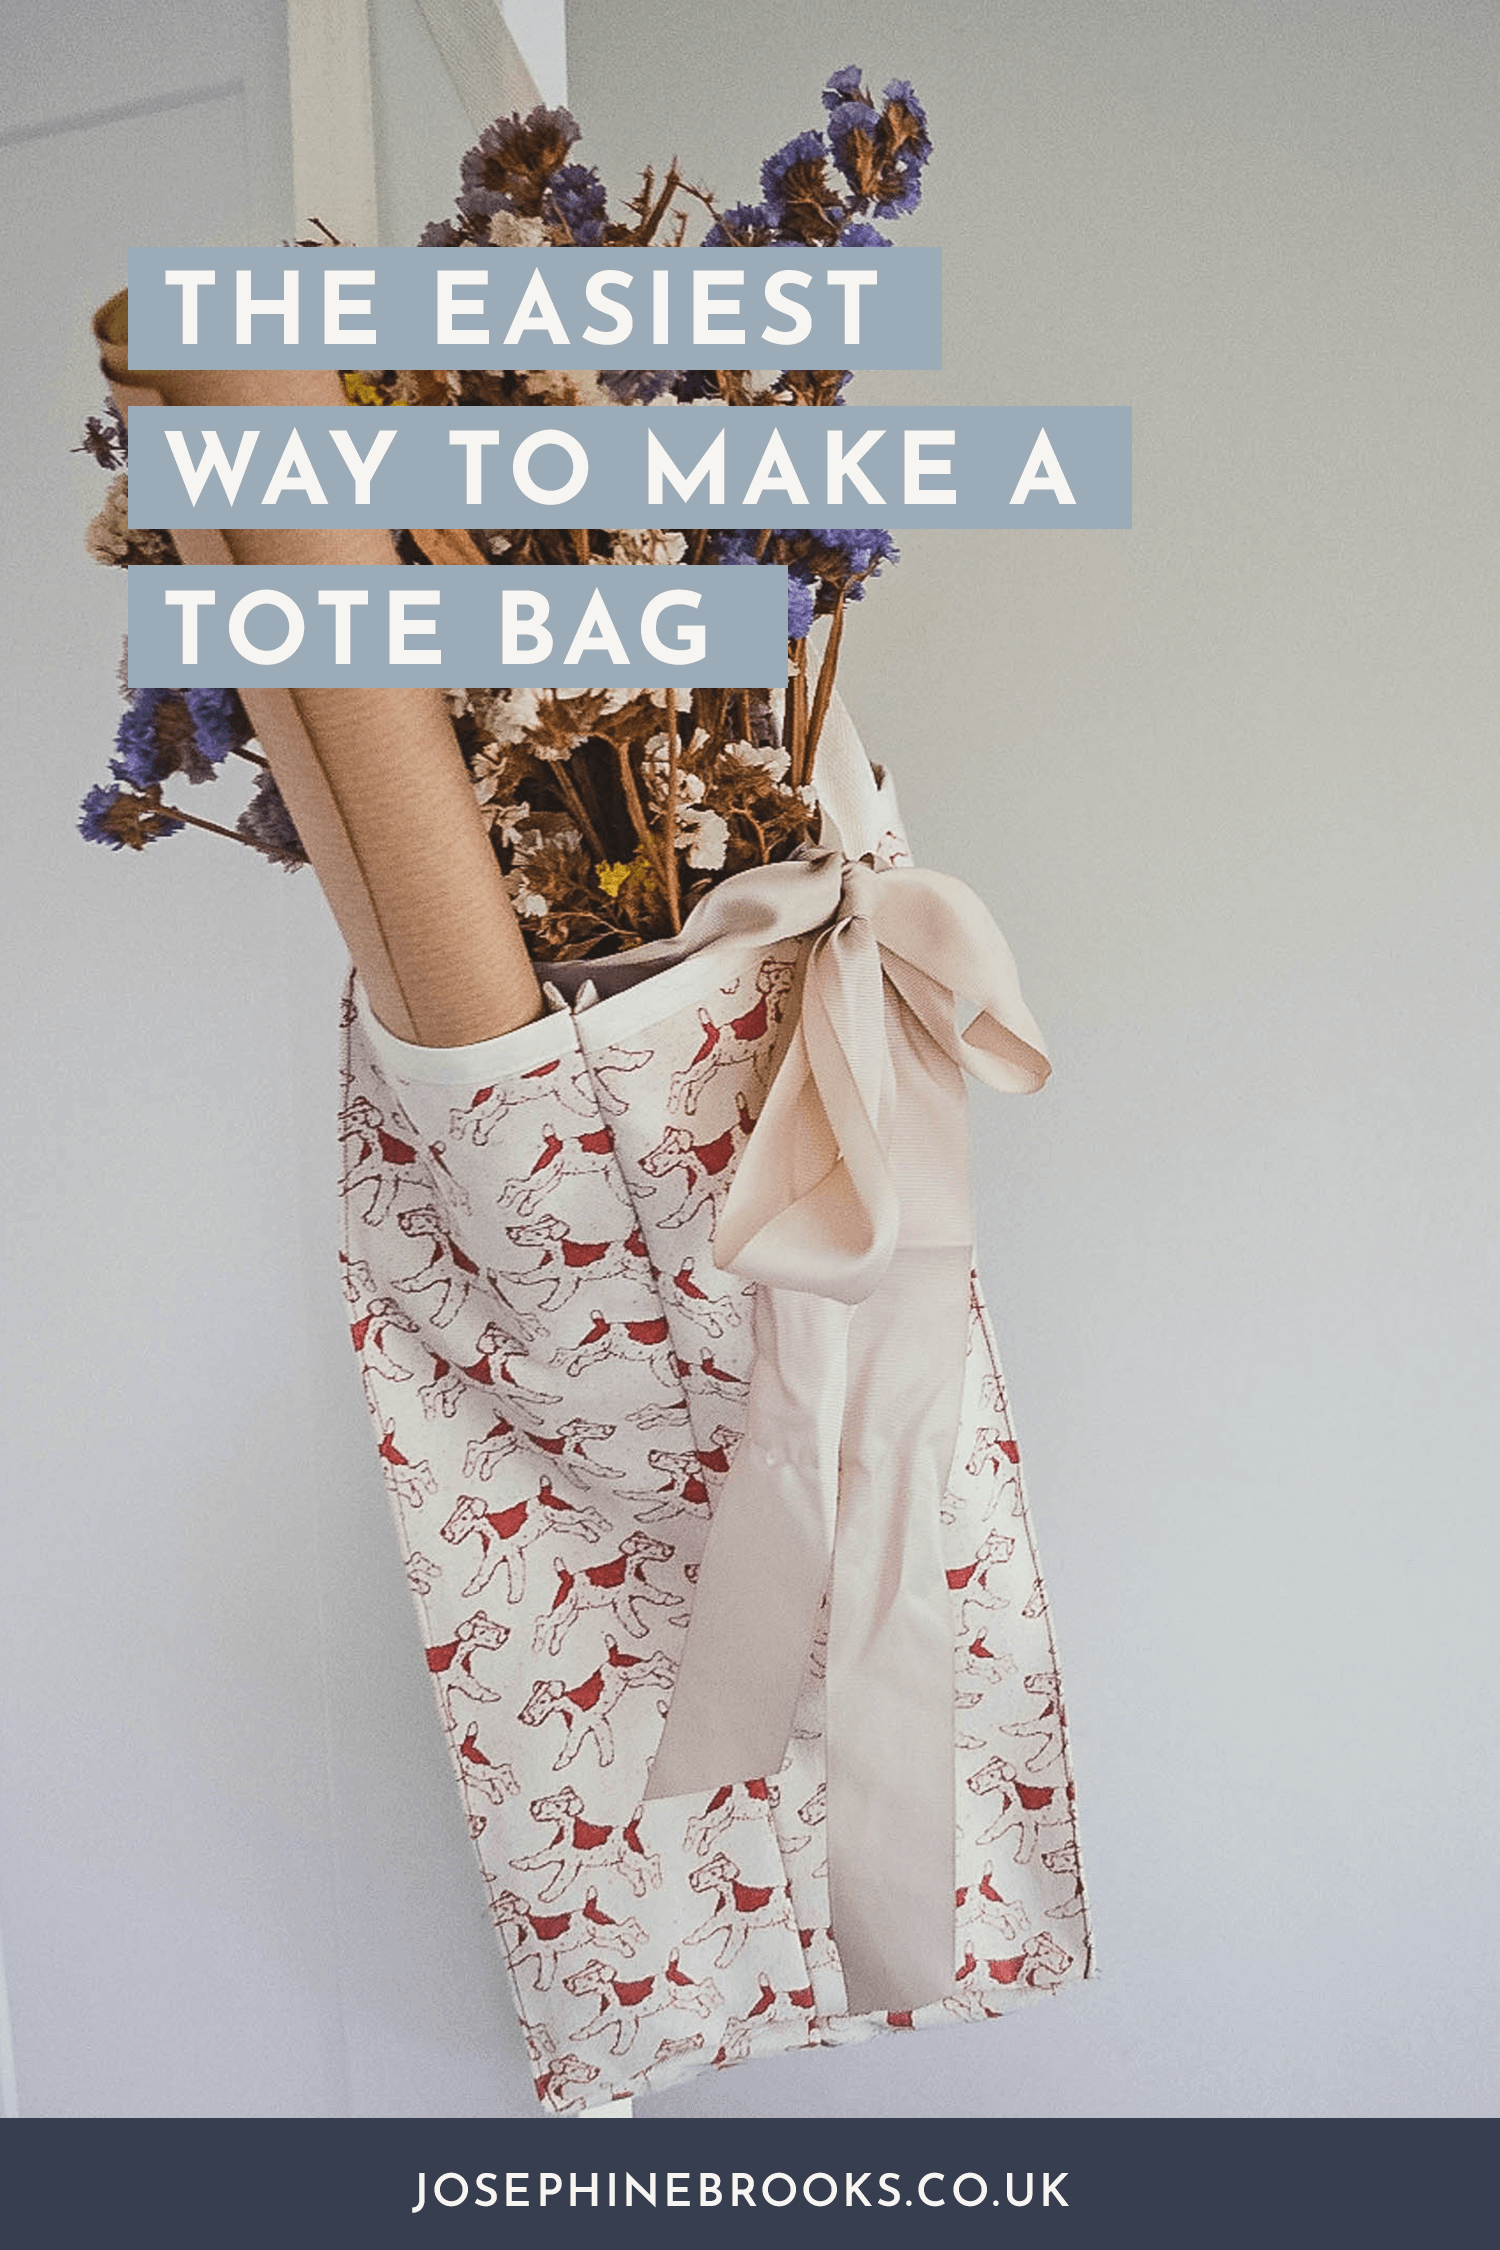 The Easiest Way to Make a Tote Bag, How to sew a tote bag, How to make a tote bag | Josephine Brooks